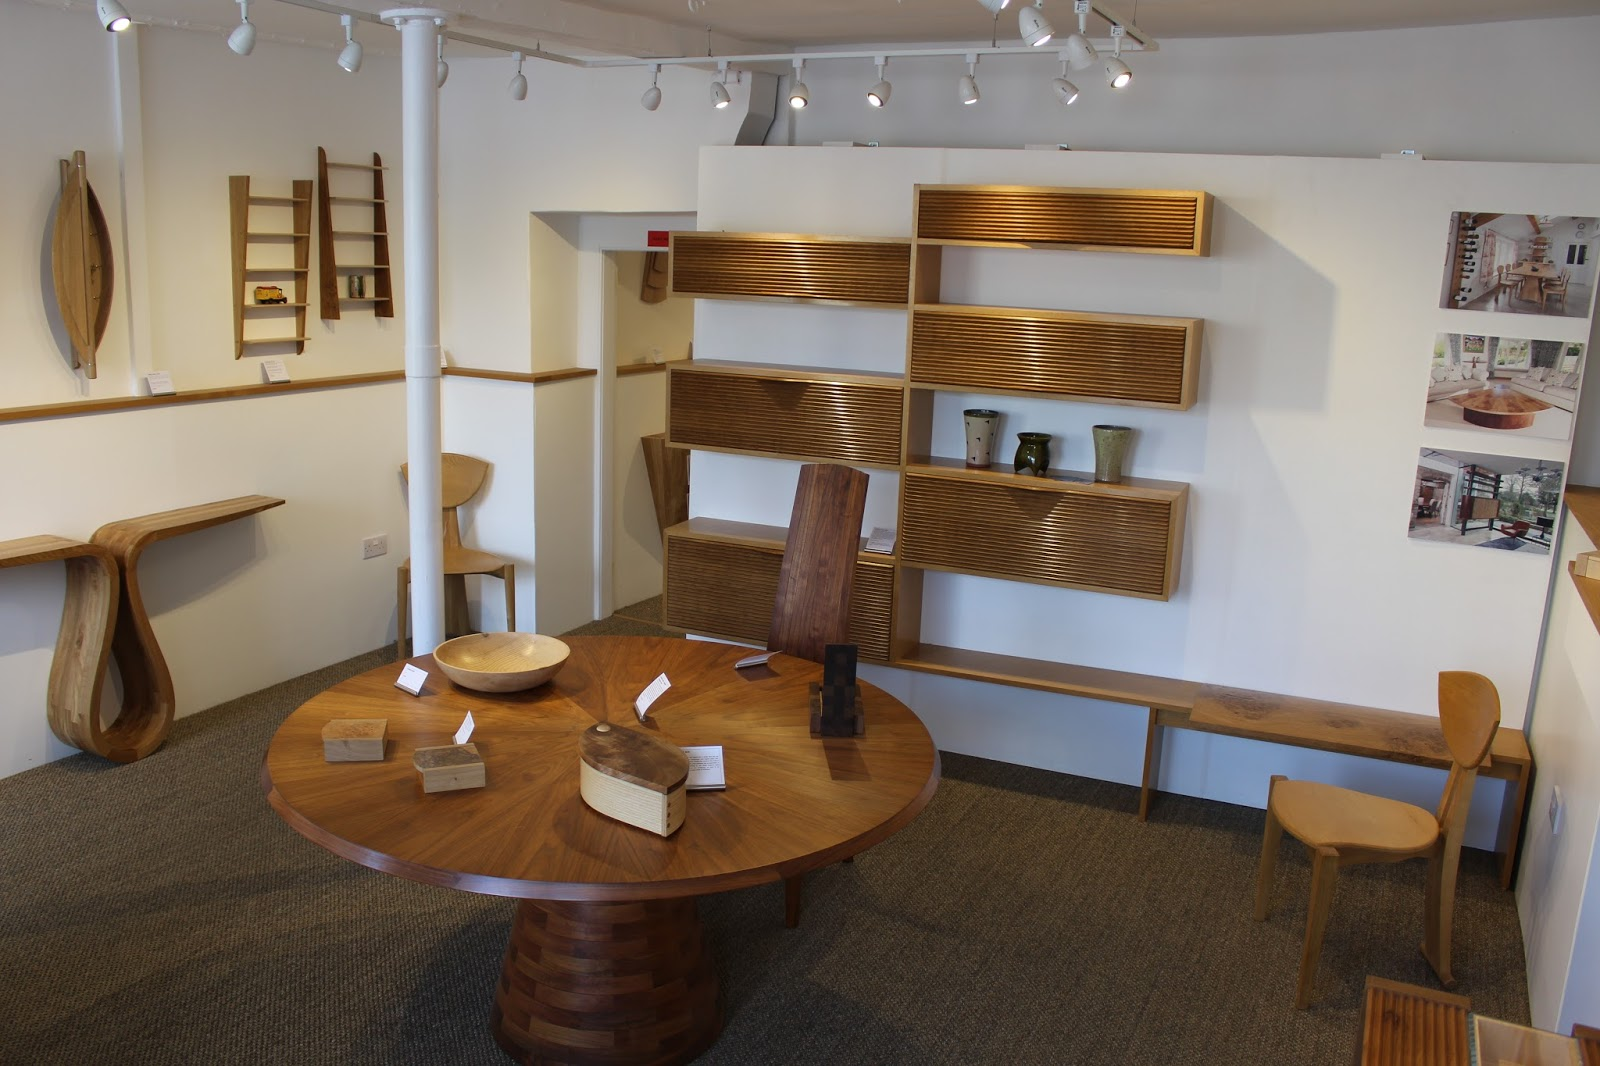 There Are Two Well Stocked Rooms With All Kinds Of Lovely Modern Pieces.  You Can See More On Their Website Http://www.matthewburt.com/#home